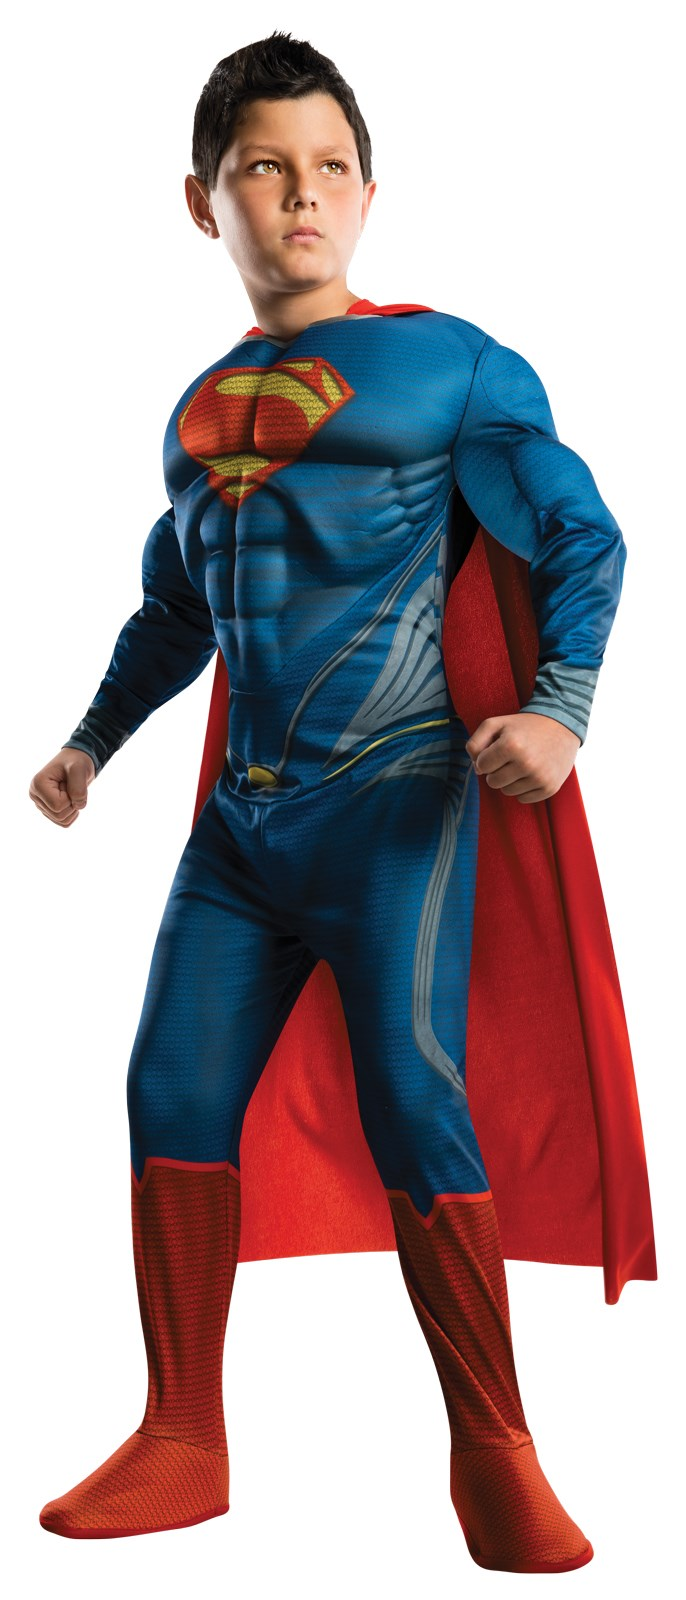 Superman Man of Steel Deluxe Toddler / Child Costume Toddler (2T-4T)